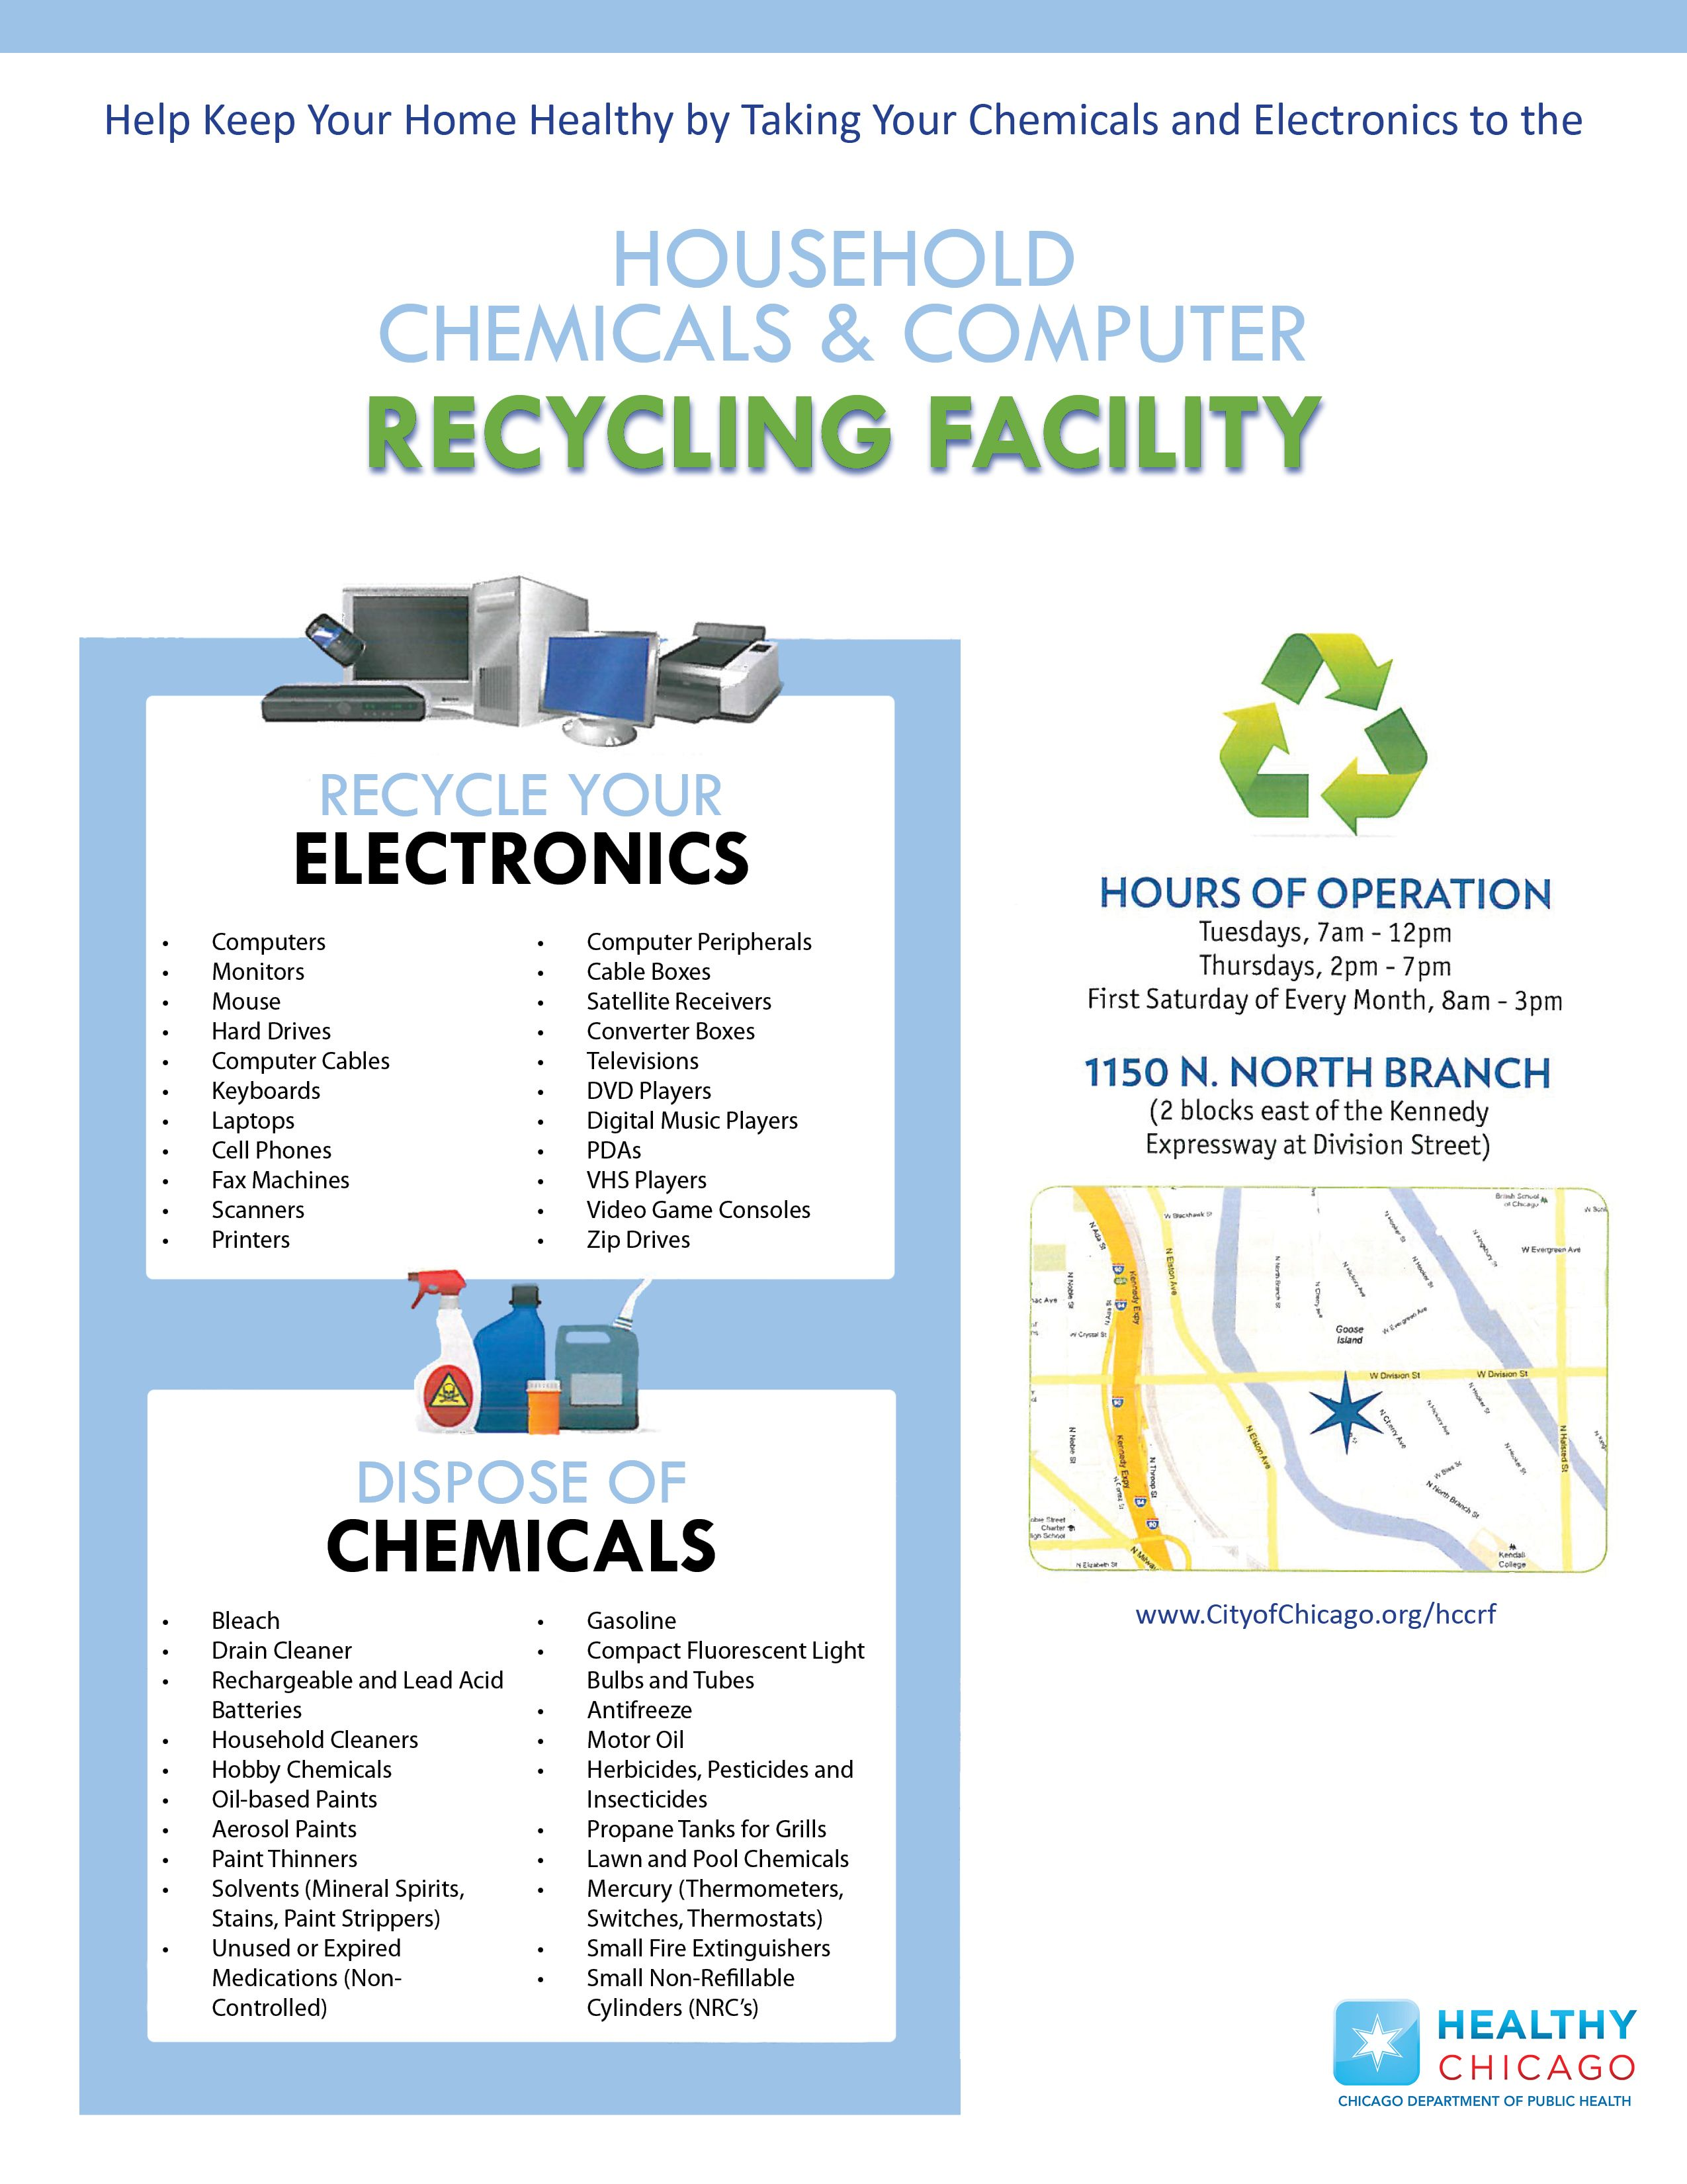 Chicago Electronics Recycling Computer Recycling Recycling Facility Recycling